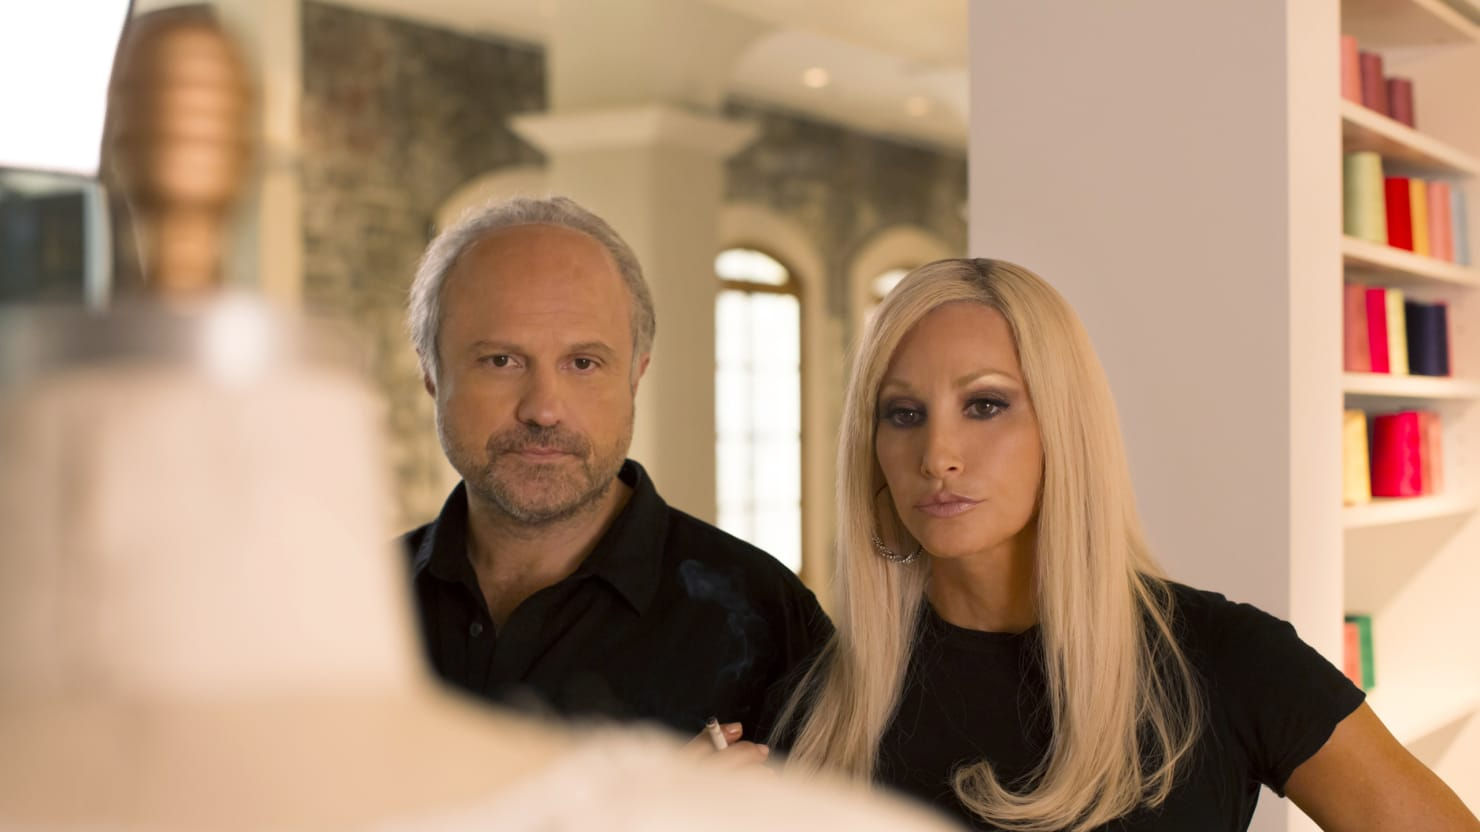 The 7 Wildest Moments from 'House of Versace' (VIDEOS)